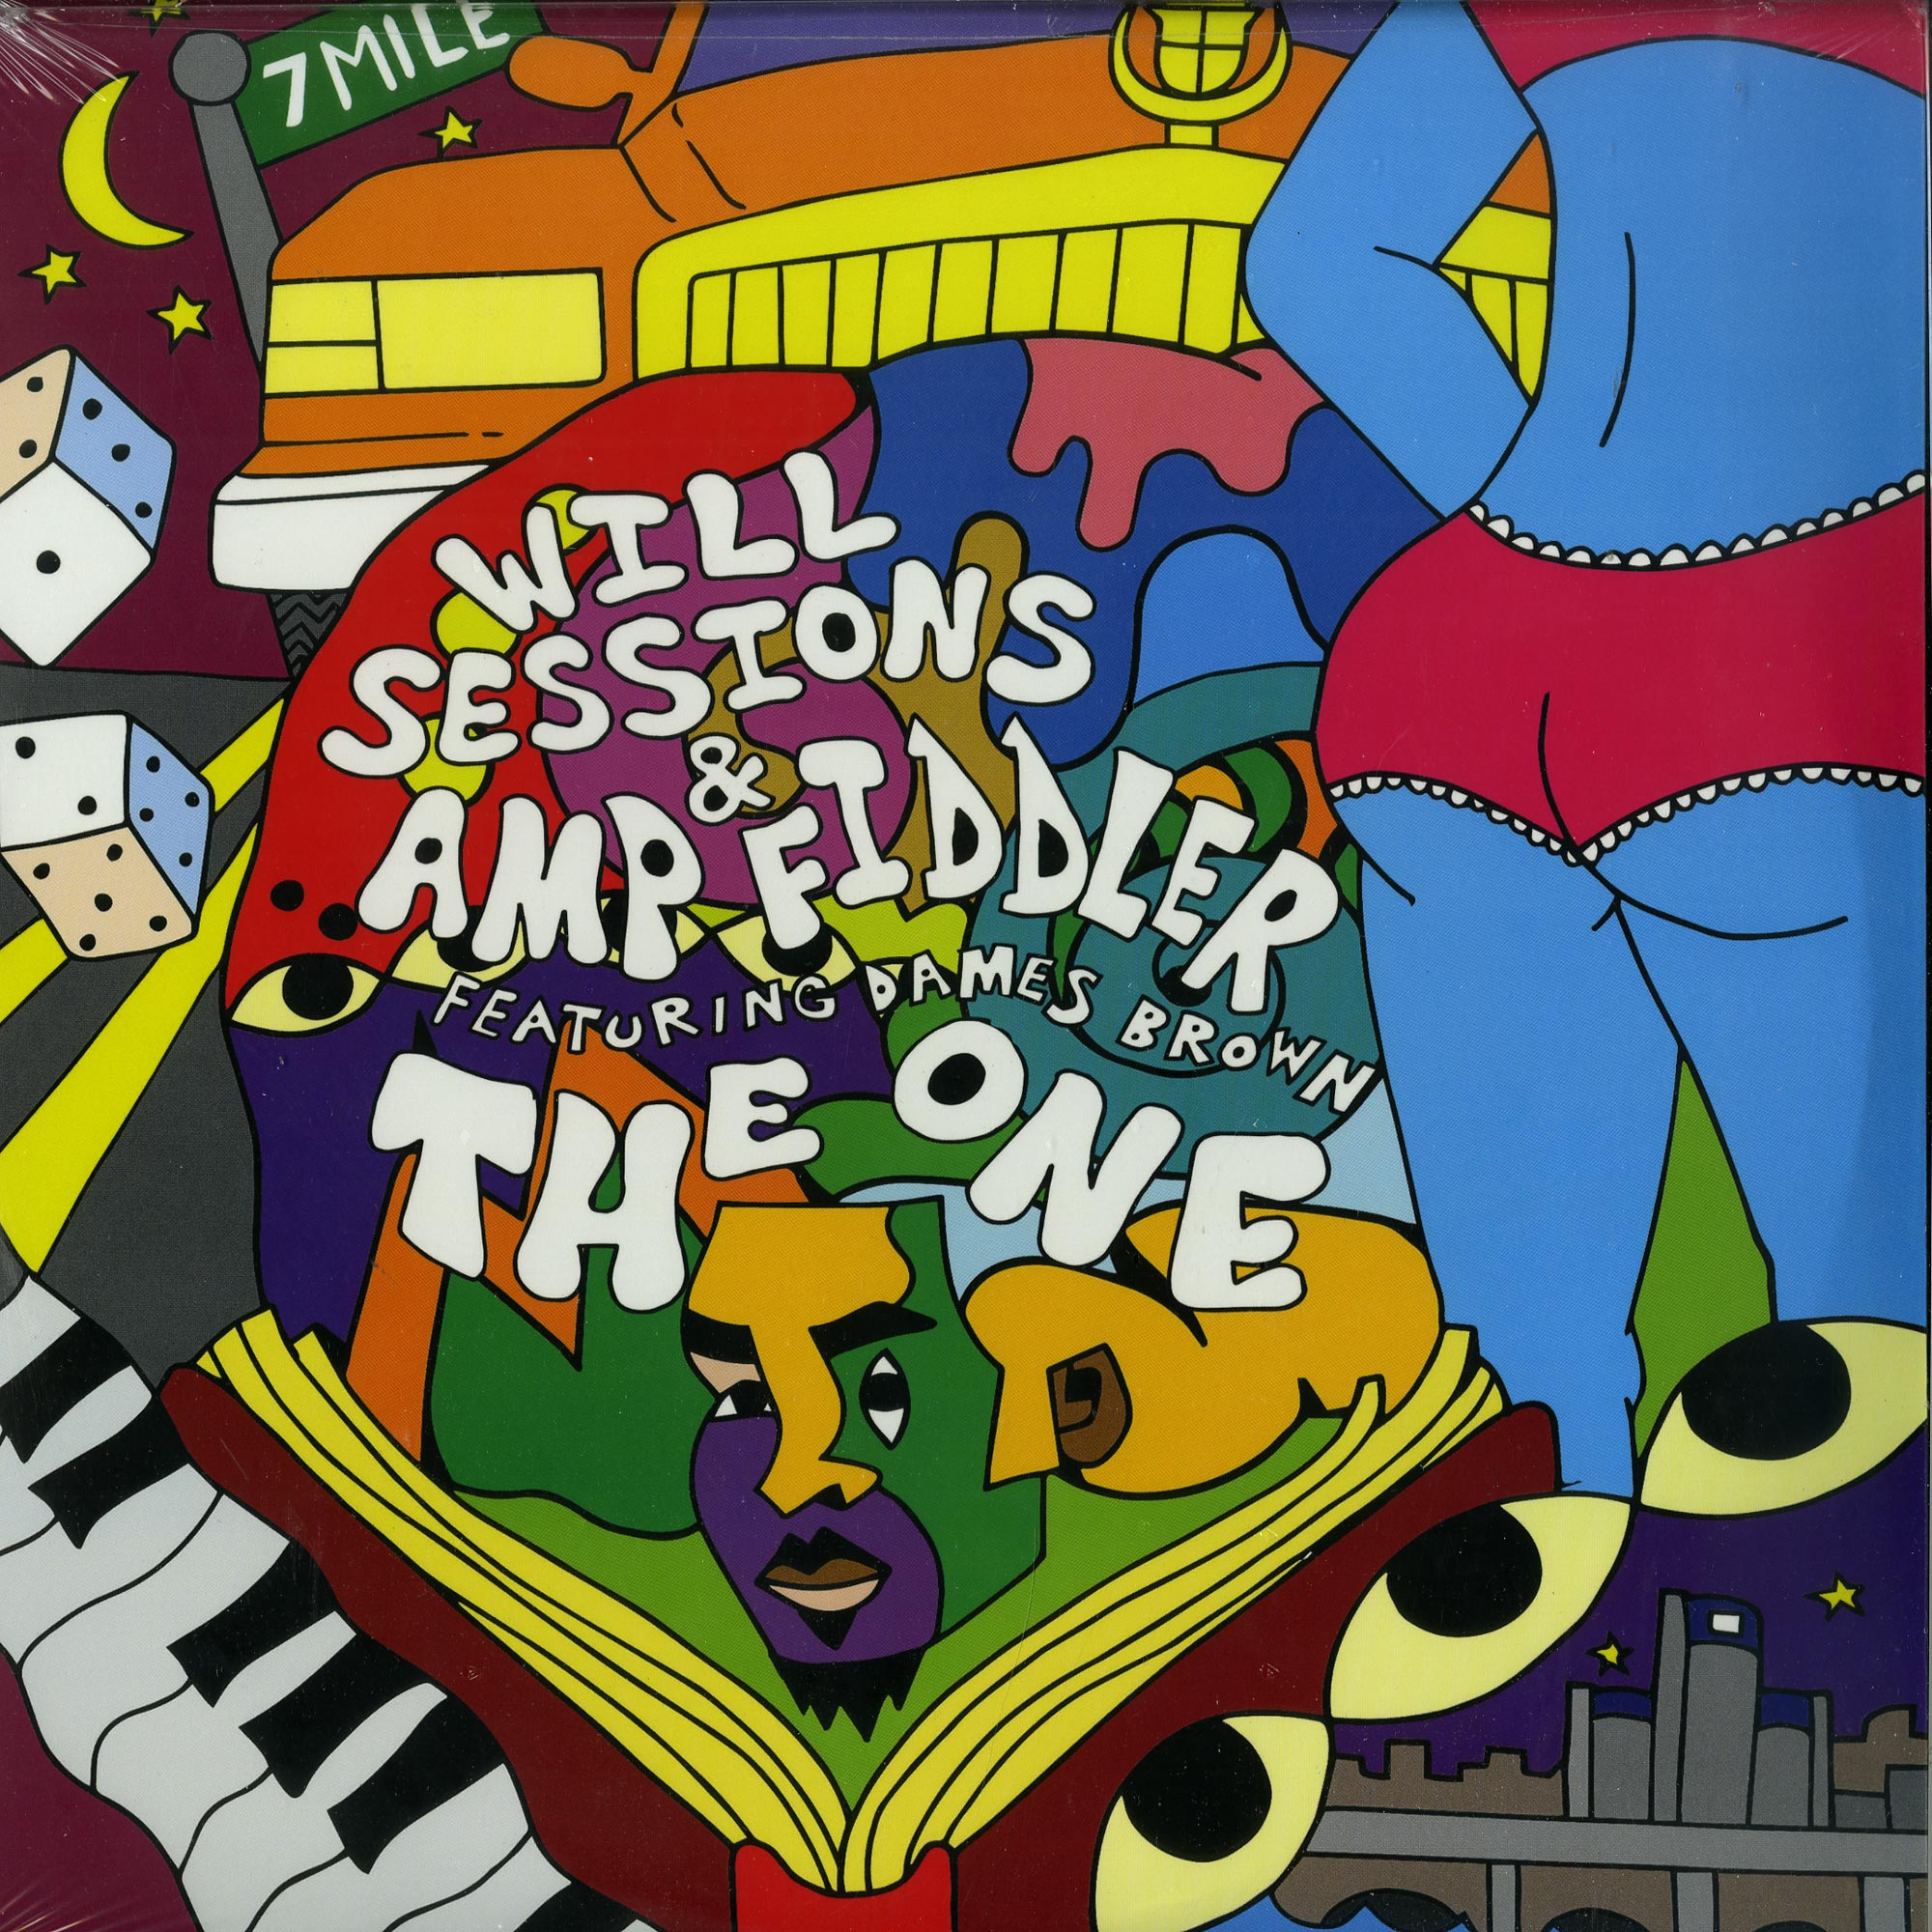 Will Sessions & Amp Fiddler ft. Dames Brown - THE ONE